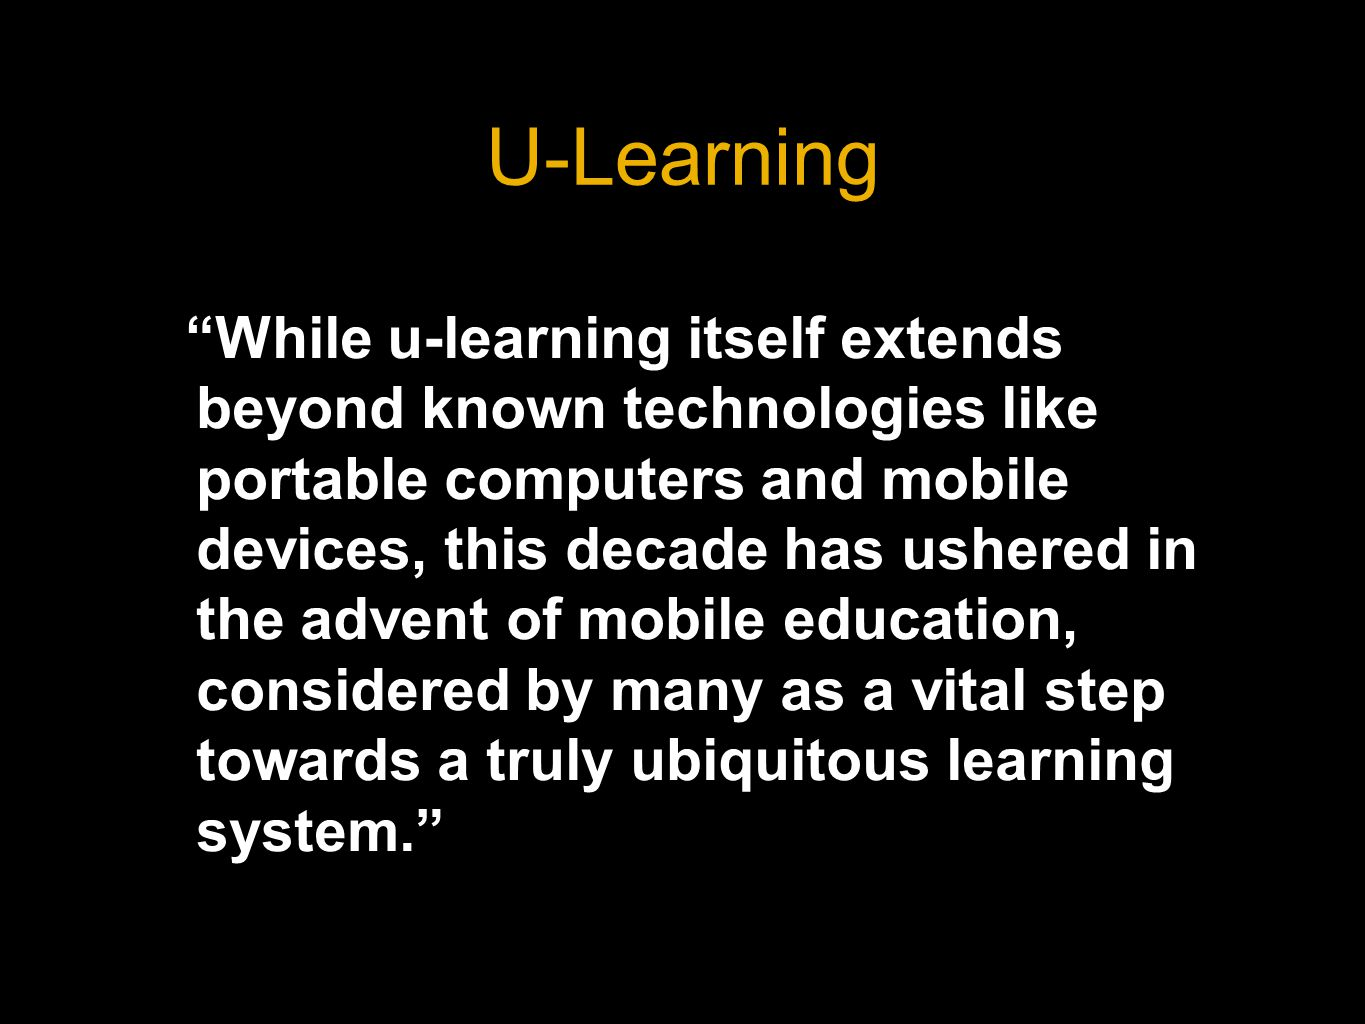 U-Learning While u-learning itself extends beyond known technologies like portable computers and mobile devices, this decade has ushered in the advent of mobile education, considered by many as a vital step towards a truly ubiquitous learning system.